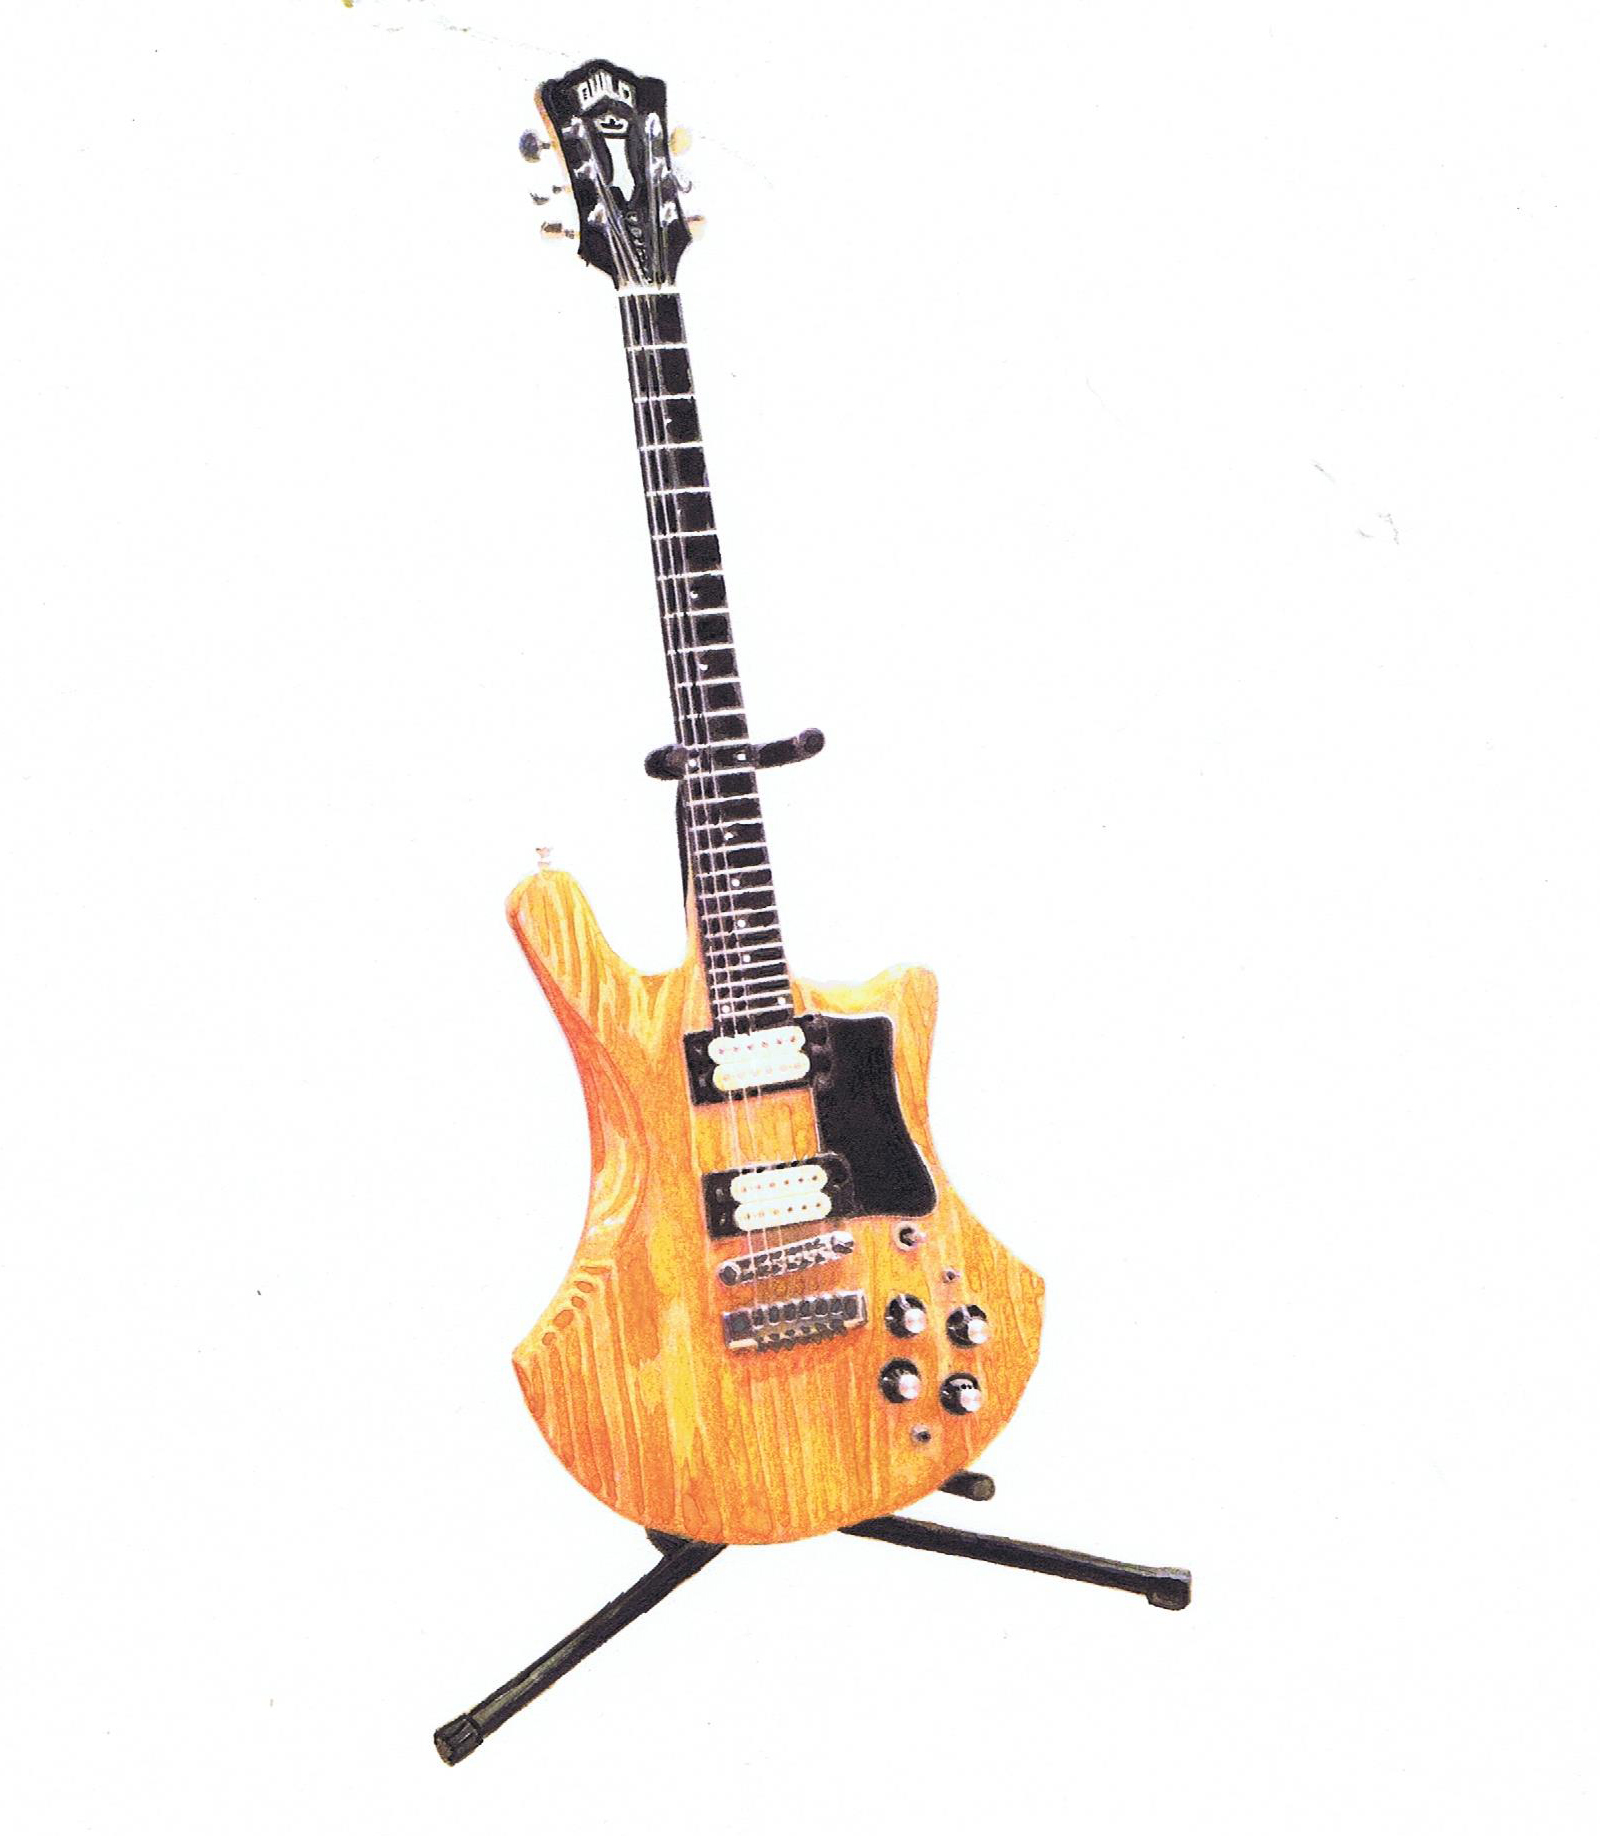 1978 Guild S300D guitar, in watercolor and ink. By Lahle Wolfe December 31, 2013.